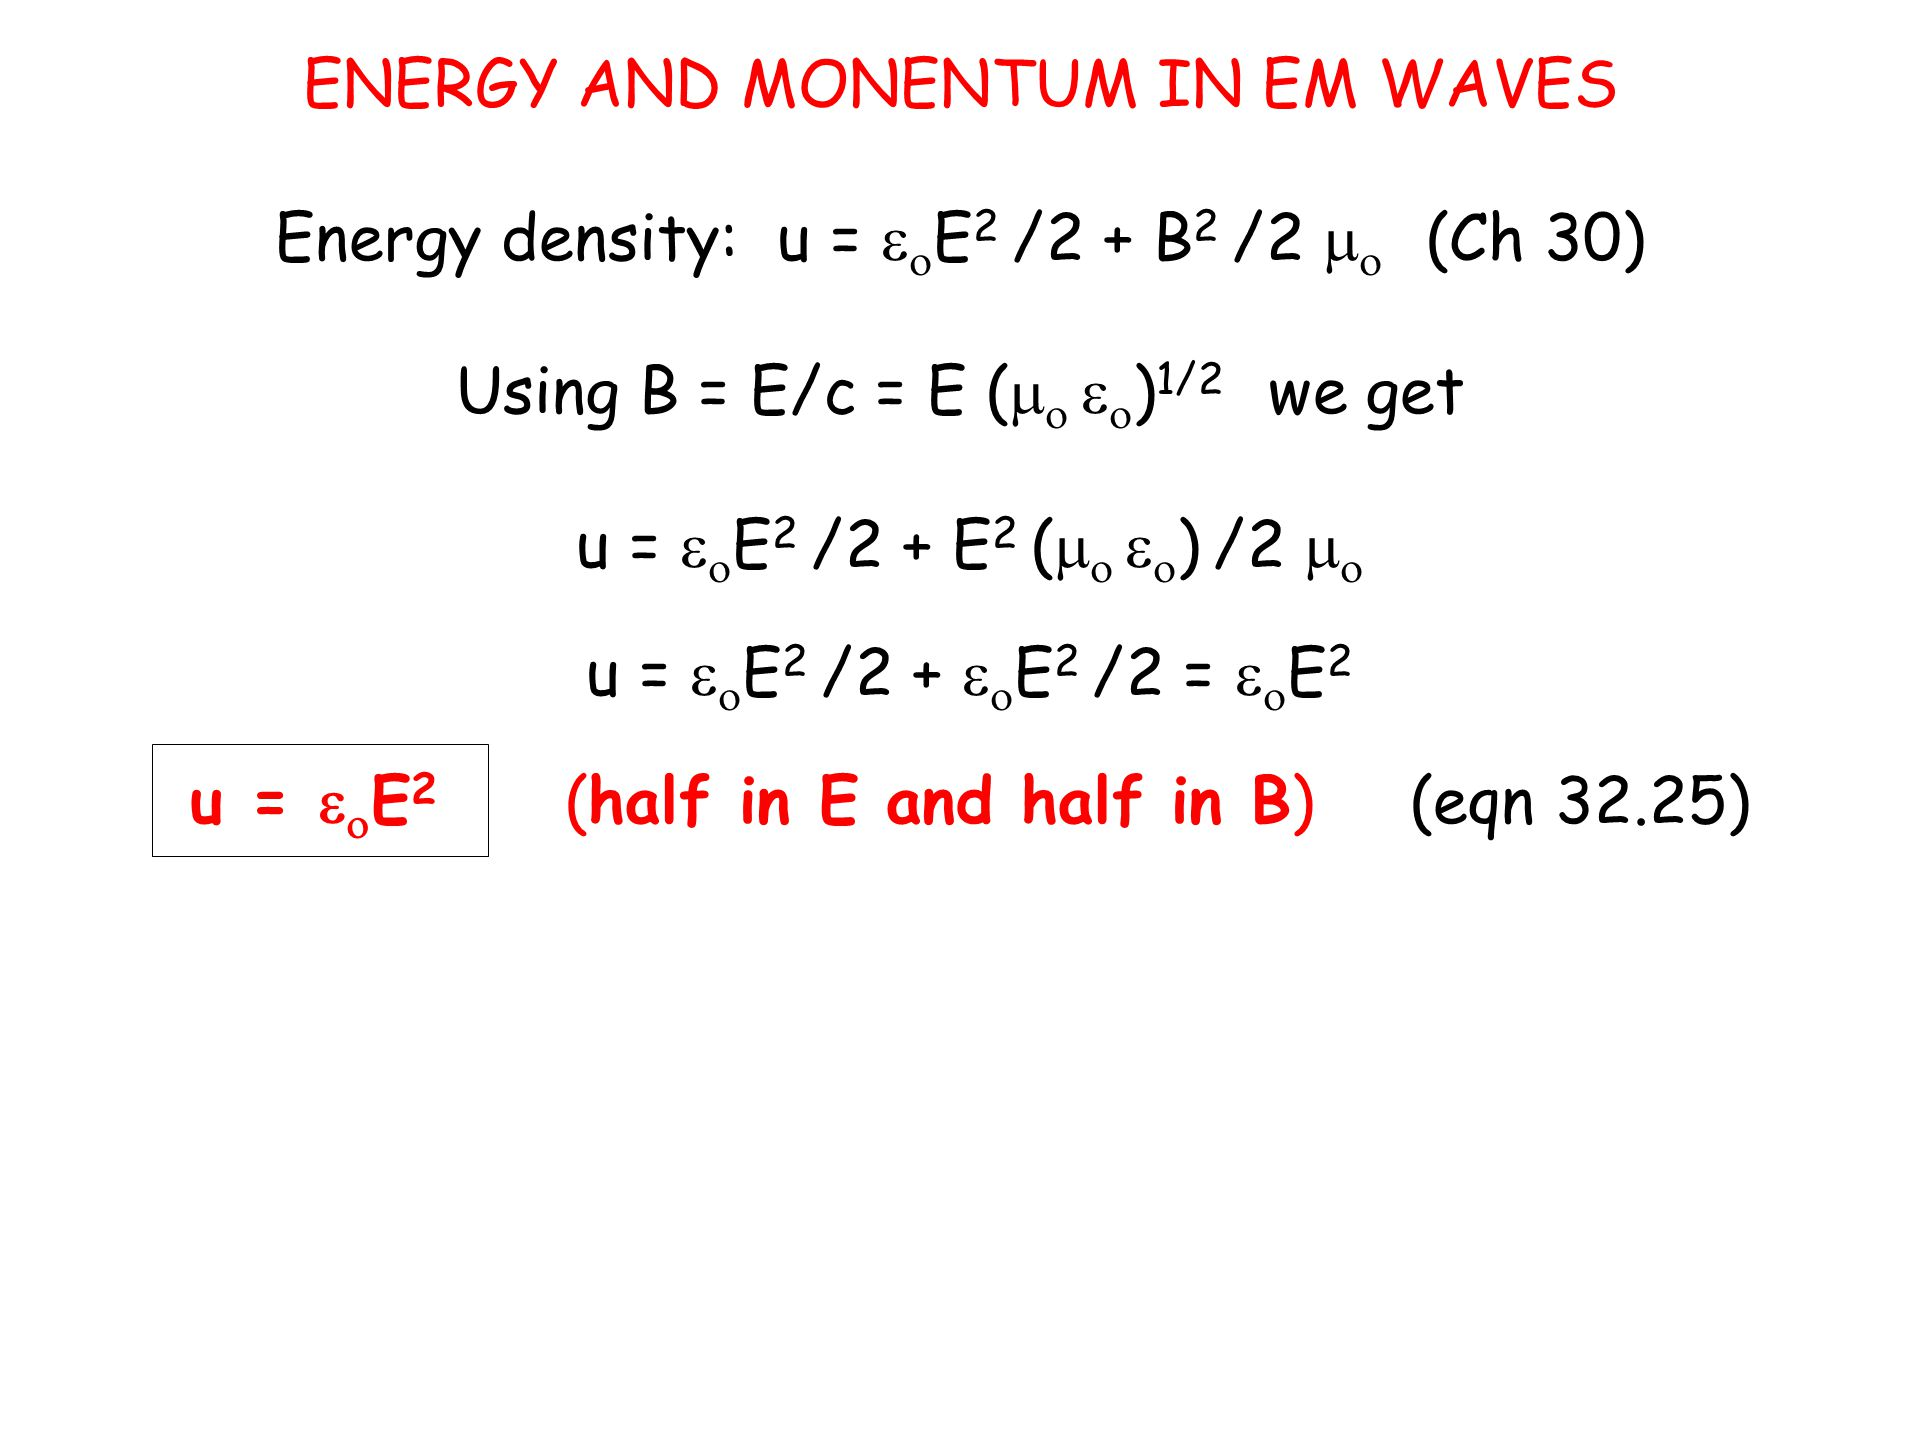 ENERGY AND MONENTUM IN EM WAVES Energy density: u =   E 2 /2 + B 2 /2   (Ch 30) Using B = E/c = E (     ) 1/2 we get u =   E 2 /2 + E 2 (     ) /2   u =   E 2 /2 +   E 2 /2 =   E 2 u =   E 2 (half in E and half in B) (eqn 32.25)